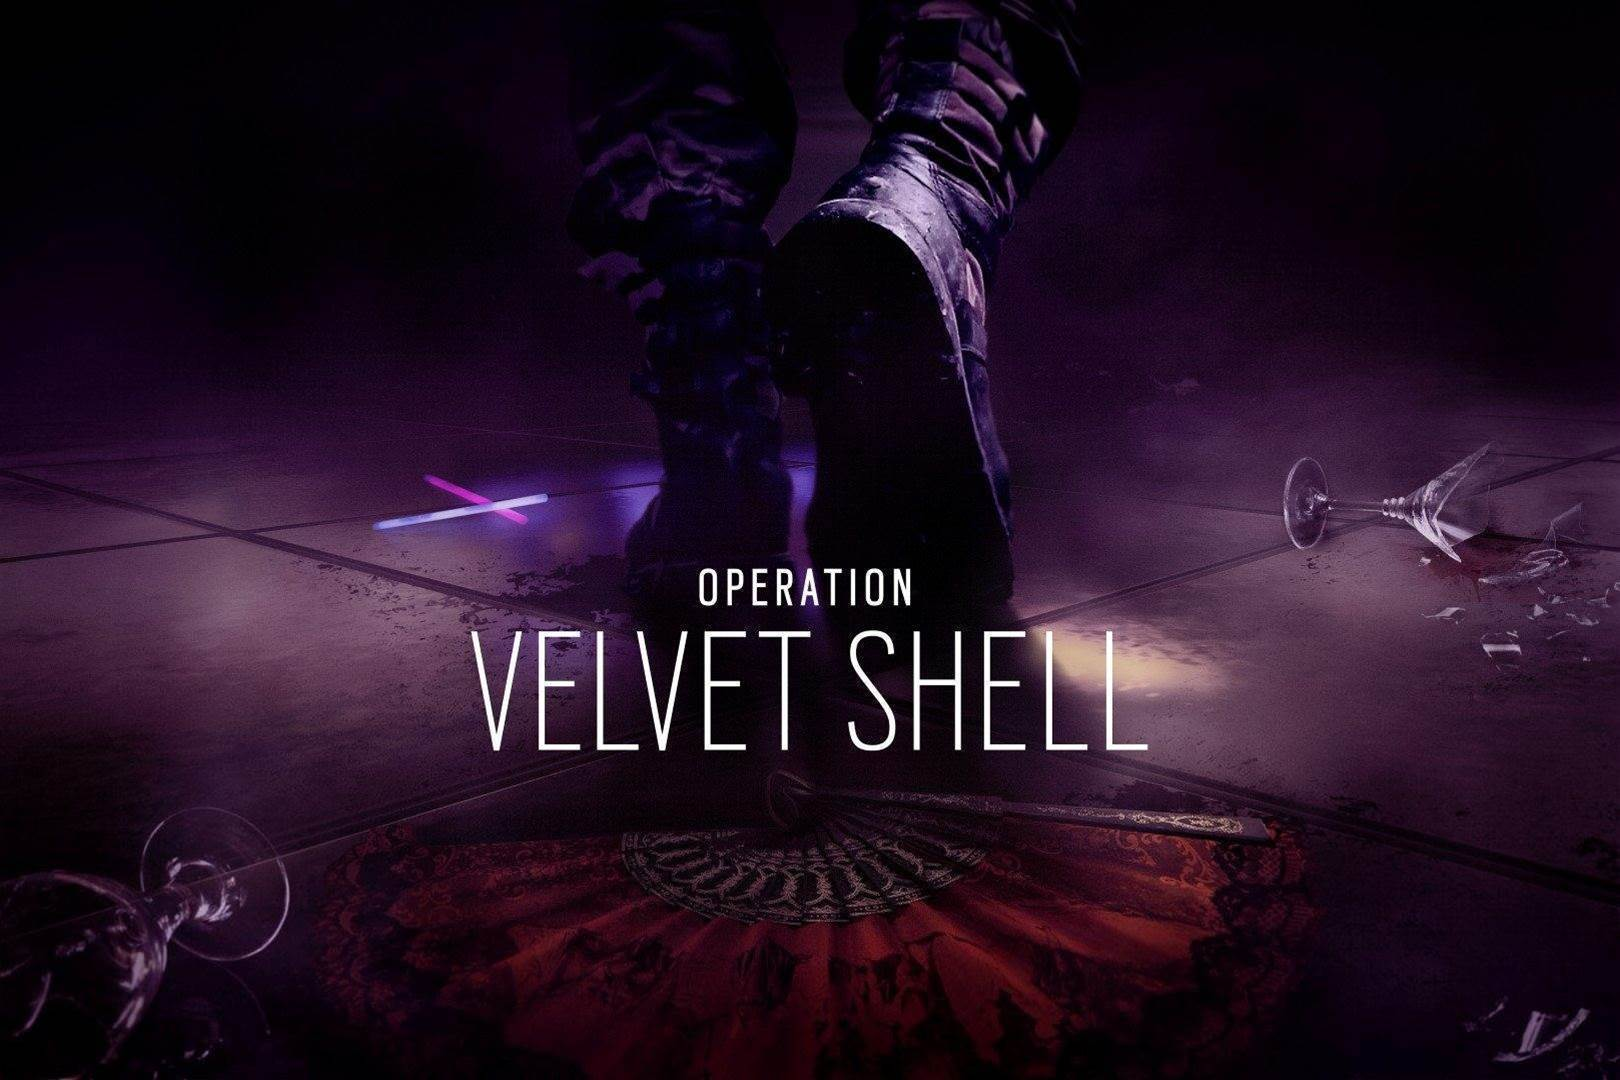 Six shots from Rainbow Six Siege's Operation Velvet Shell DLC